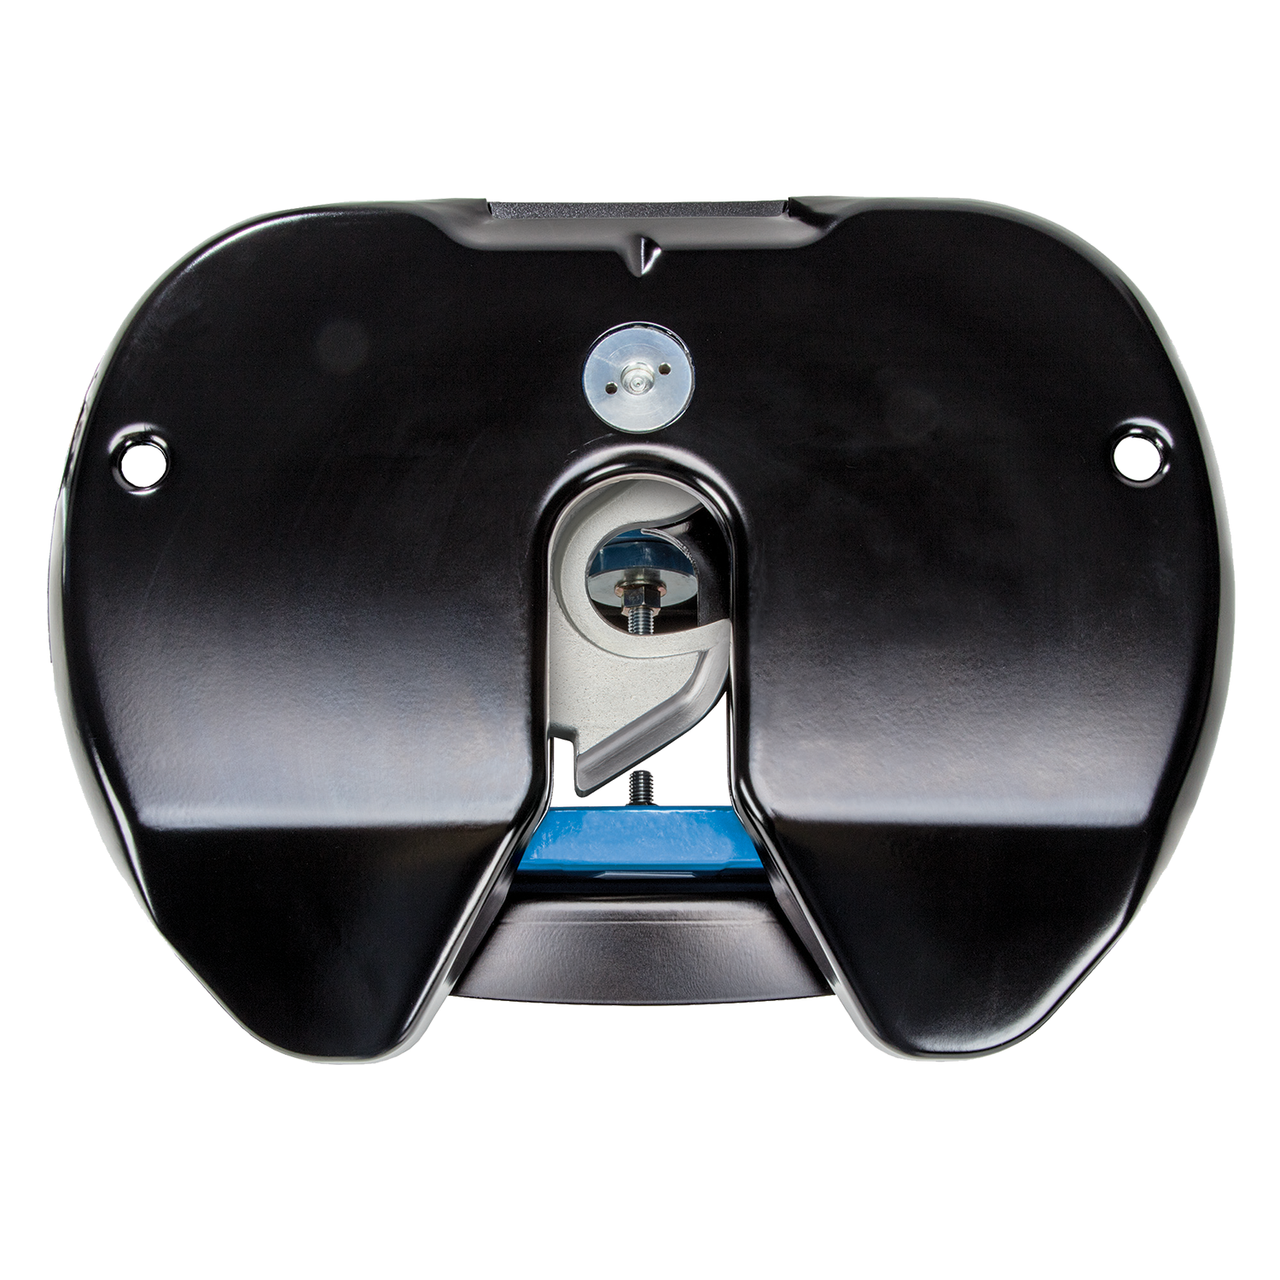 30919 --- Reese™  M5 27K Fifth Wheel Hitch for Dodge Trucks with OEM puck system